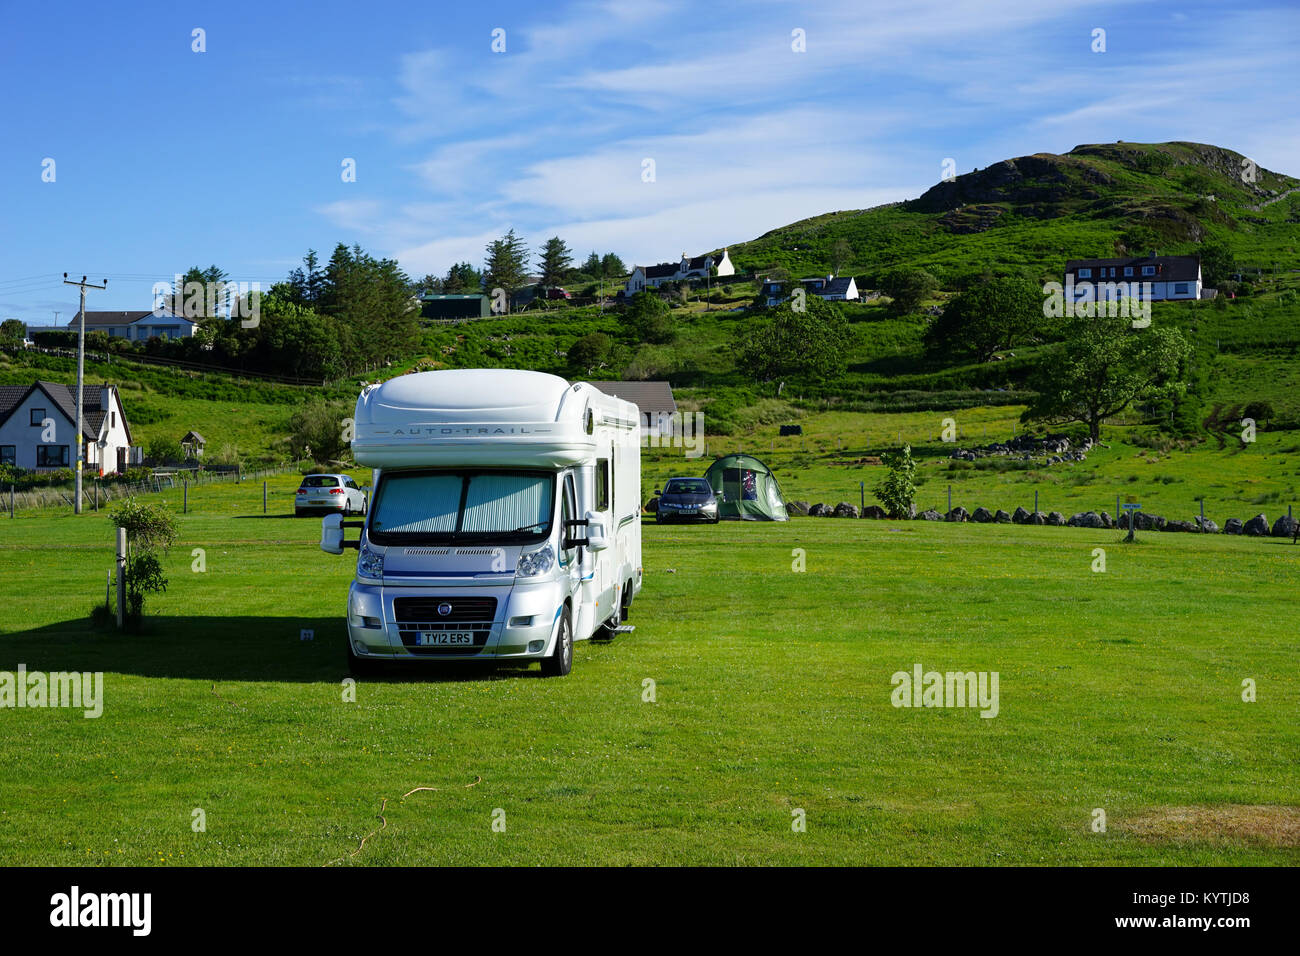 Motorhome parked up at campsite at Gairloch, Wester Ross,North West Scotland,UK. - Stock Image